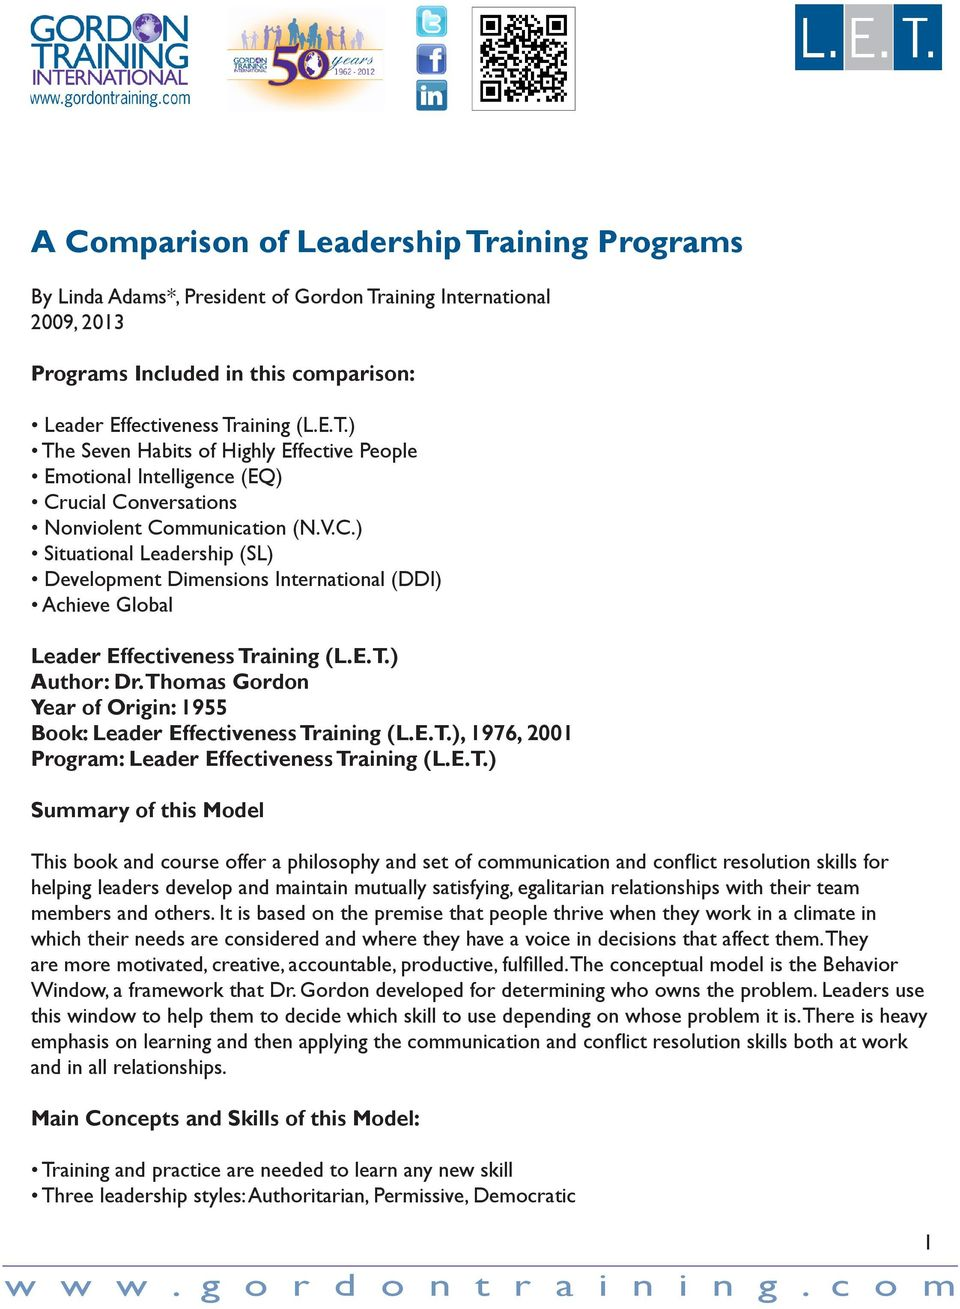 A Comparison of Leadership Training Programs - PDF